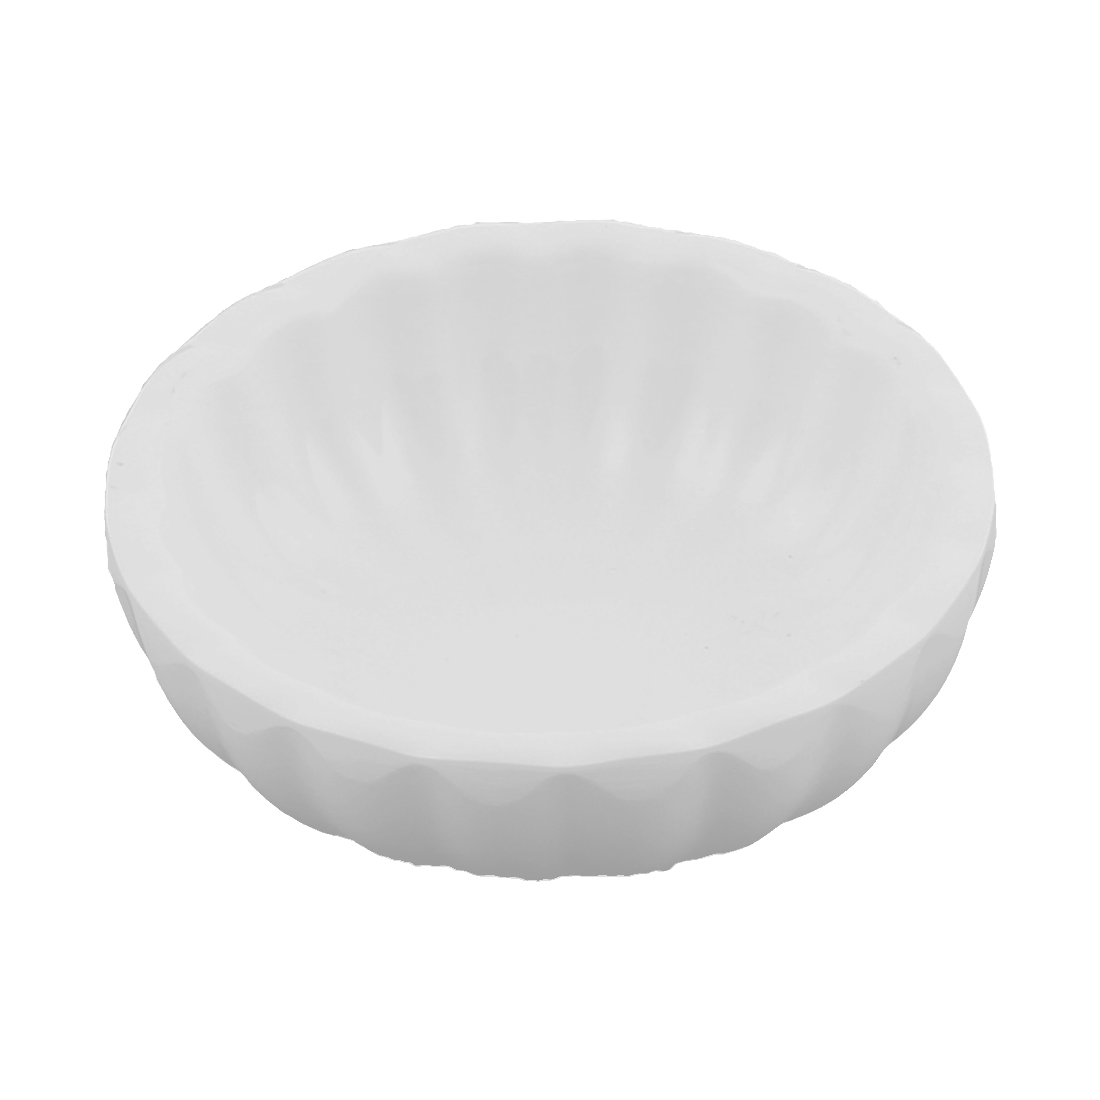 Round Shape Sushi Soy Sauce Dipping Dish Plate 72mm Dia